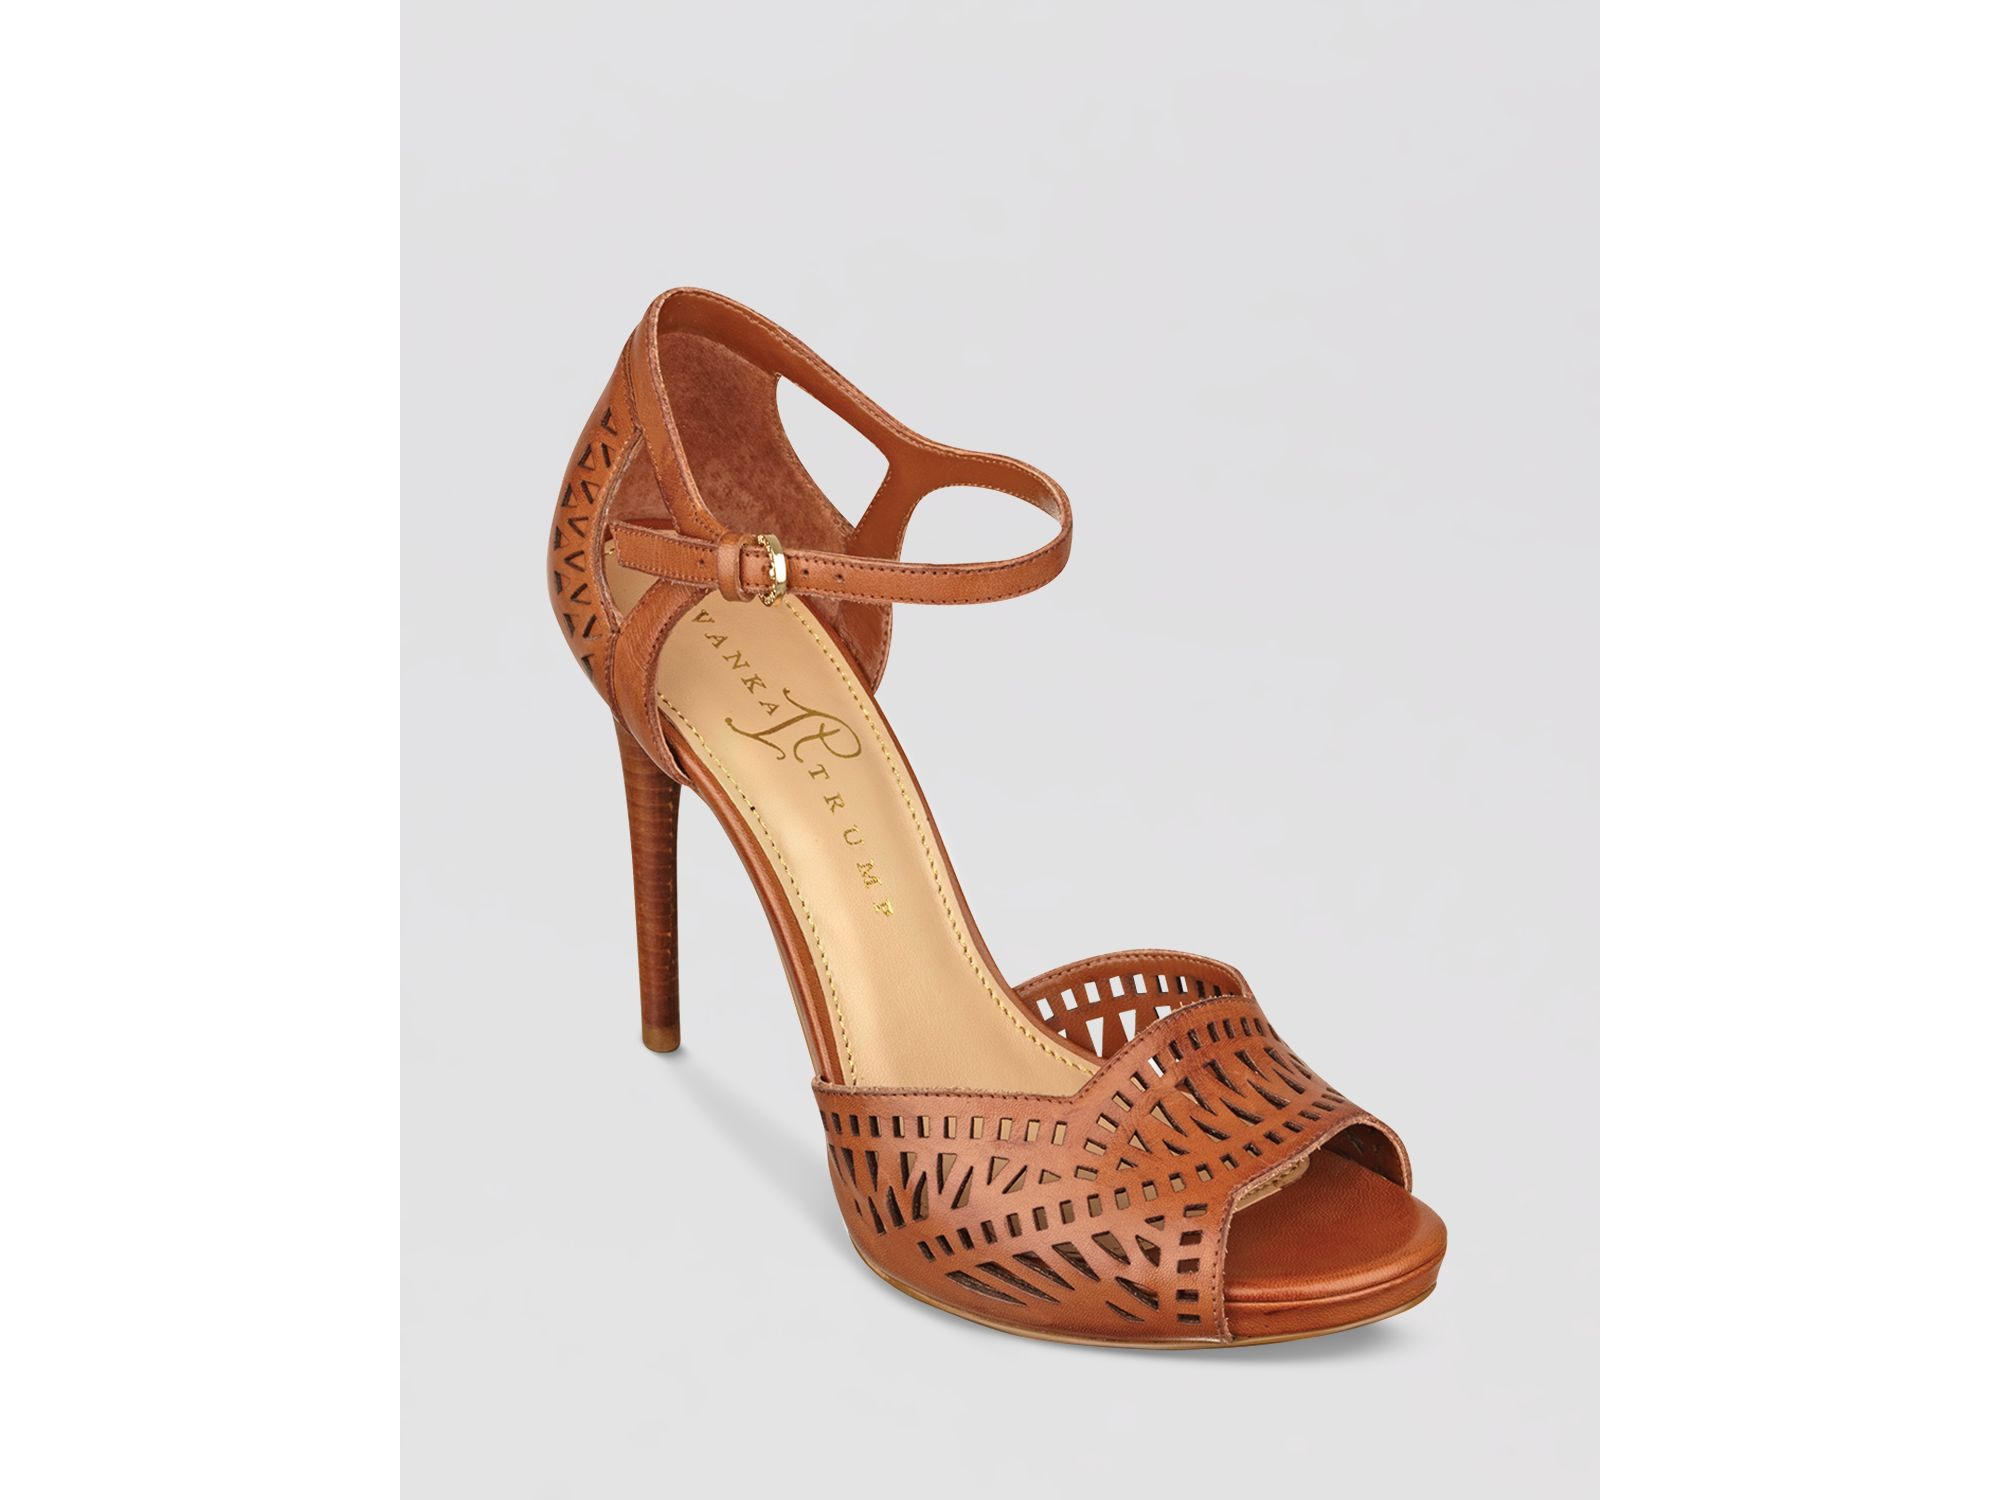 Lyst - Ivanka trump Ankle Strap Pumps Ariell High Heel in Brown